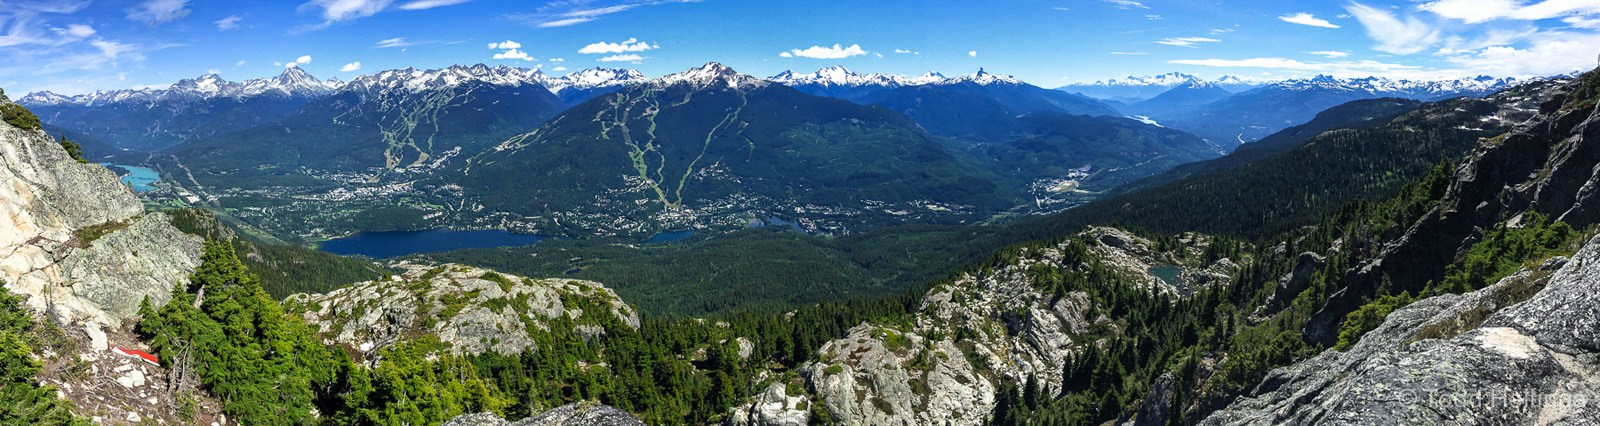 The network of trails tops out on the summit of Sproatt, way above the Whistler valley with views in 360 degrees to blow your mind.